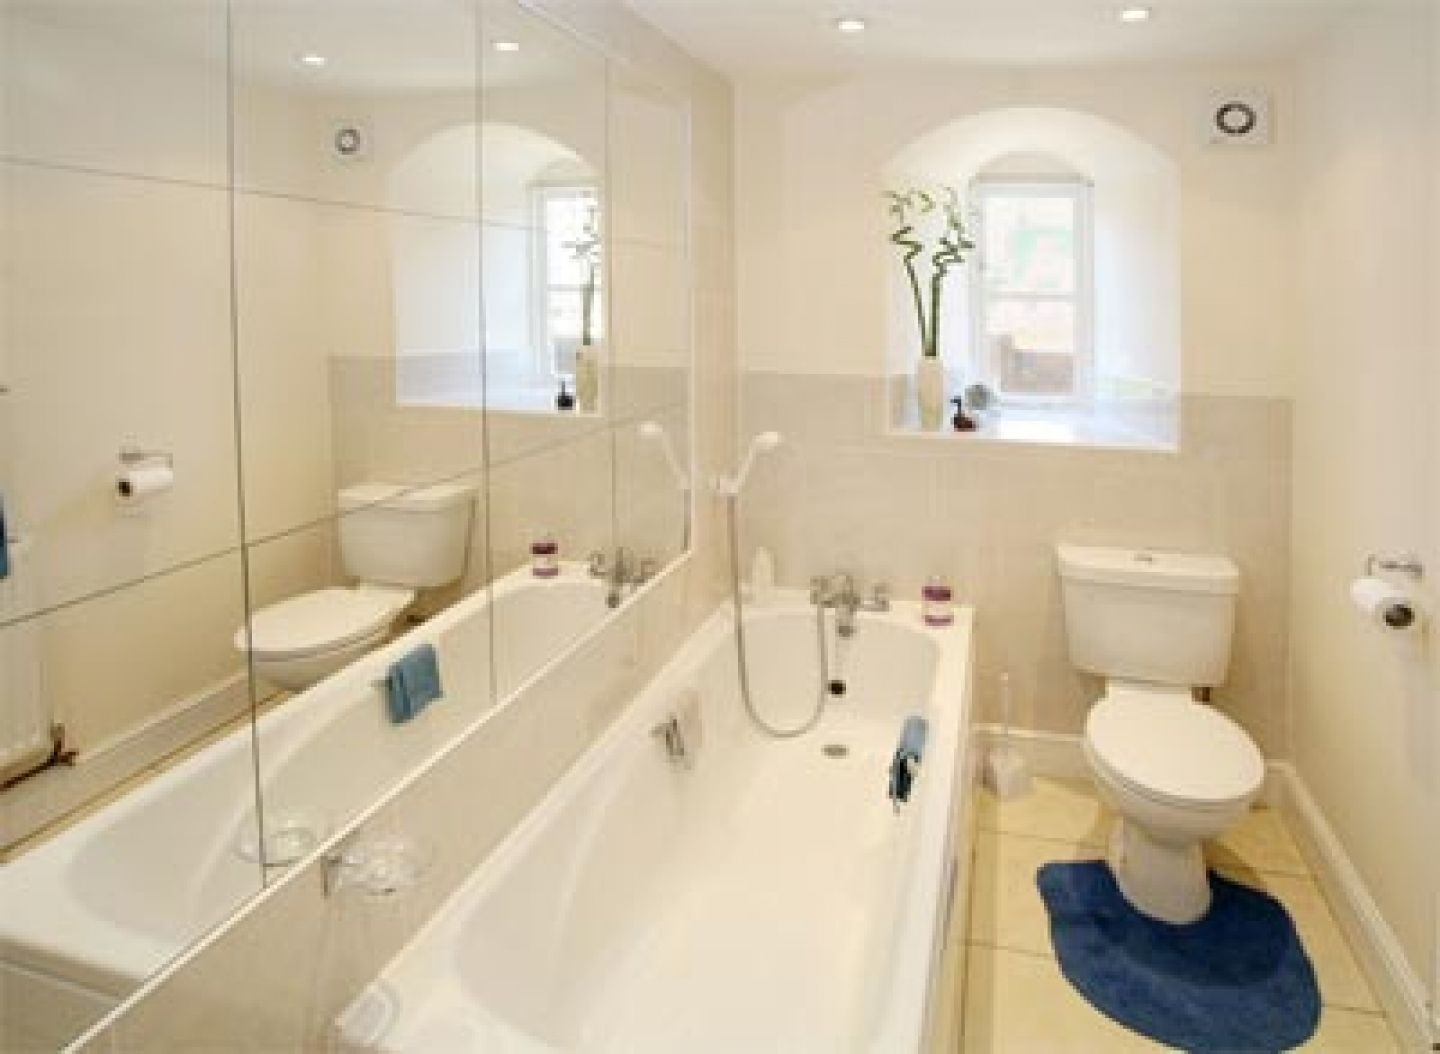 How To Purchase A Beautiful Bathroom Suite On A Shoestring Budget - Small bathroom decorating ideas on tight budget creative ideas